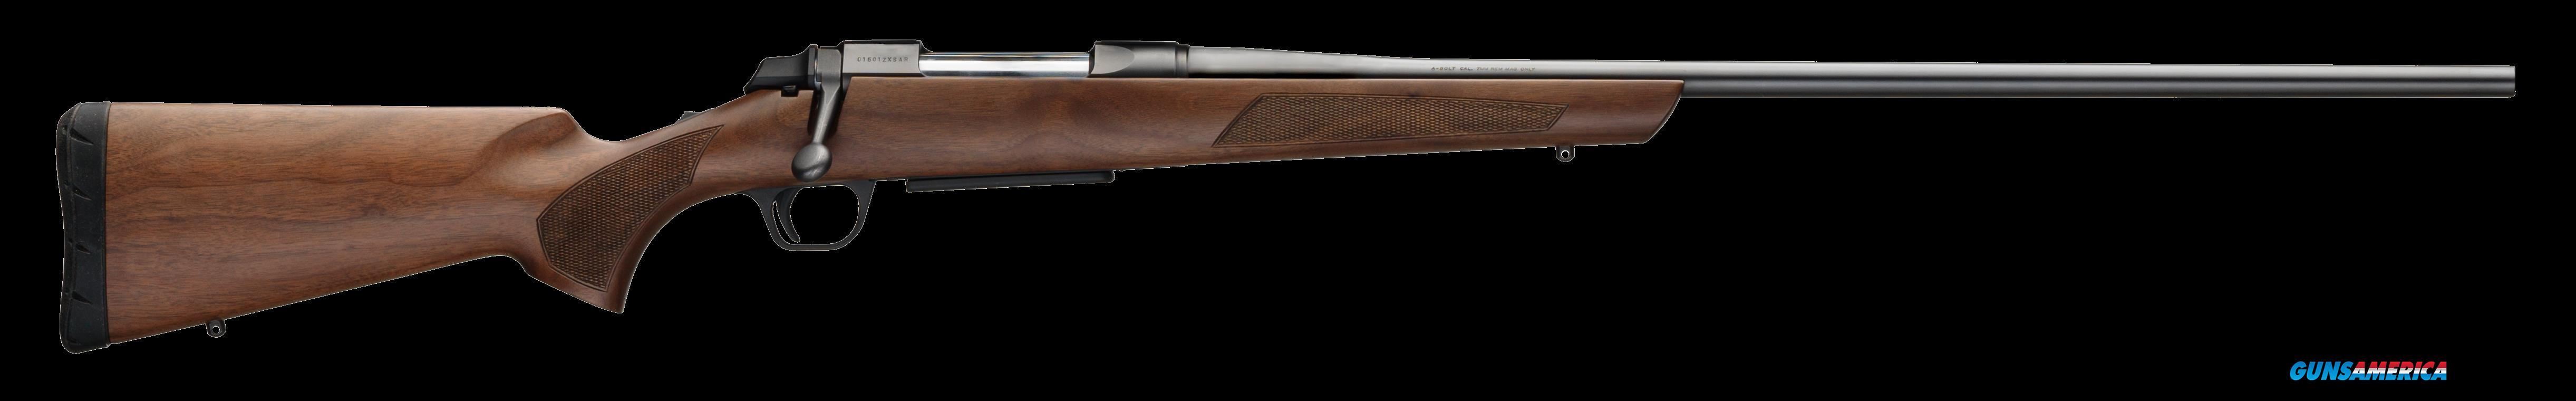 "Browning 035801248 AB3 Hunter Bolt 270 Winchester Short Magnum (WSM) 23"" 3+1 Black Walnut Stock  Guns > Rifles > B Misc Rifles"